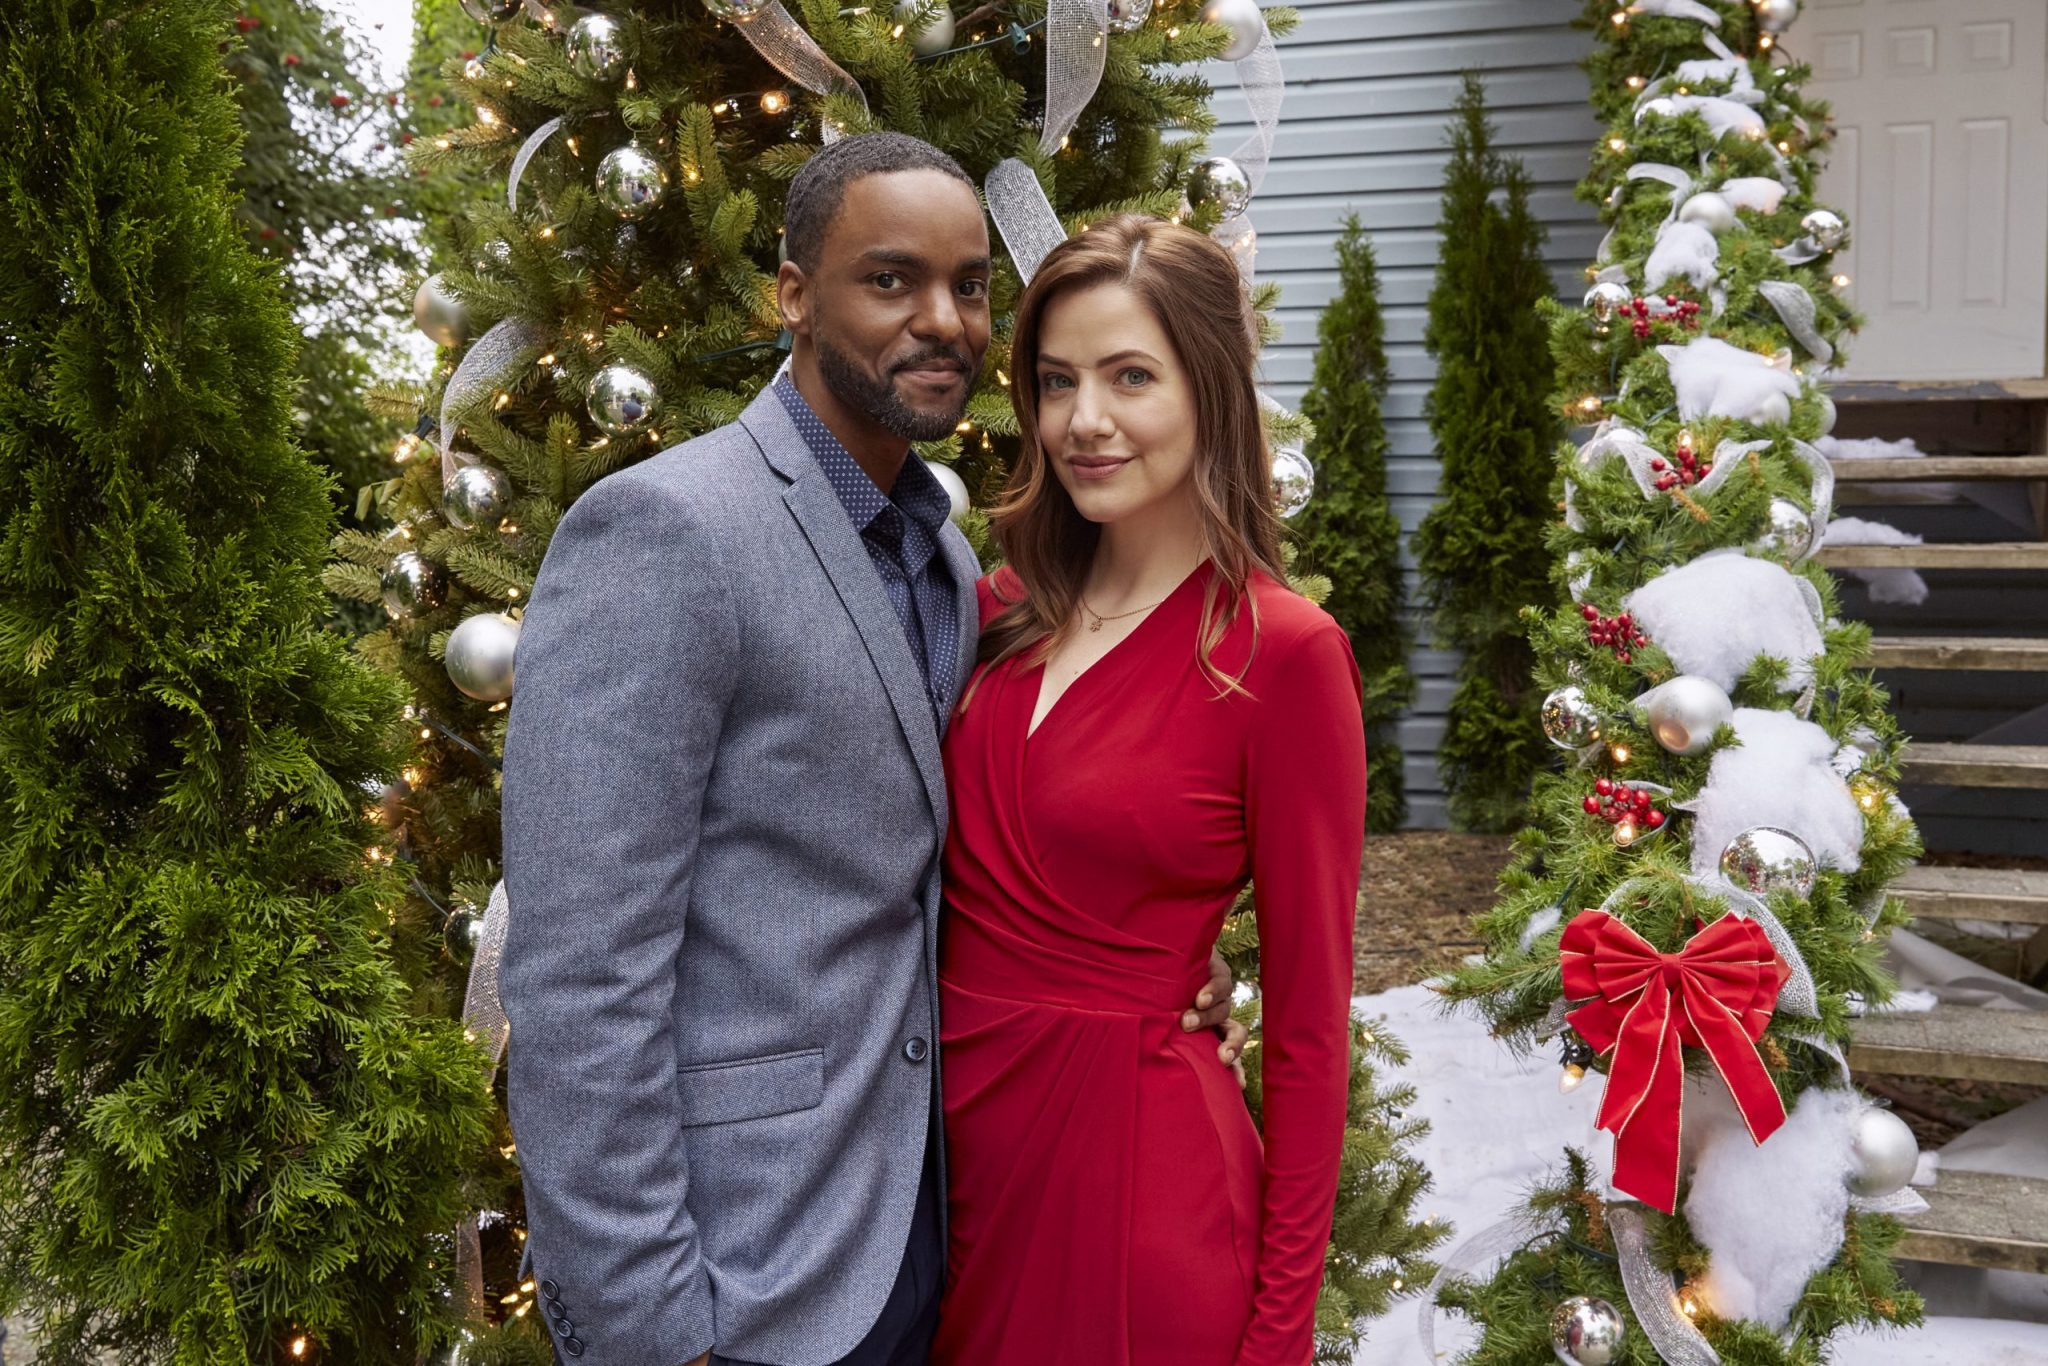 Hallmark, Jingle Bell Bride, Photo: Ronnie Rowe Jr., Julie Gonzalo Credit: ©2020 Crown Media United States LLC/Photographer: Ryan Plummer